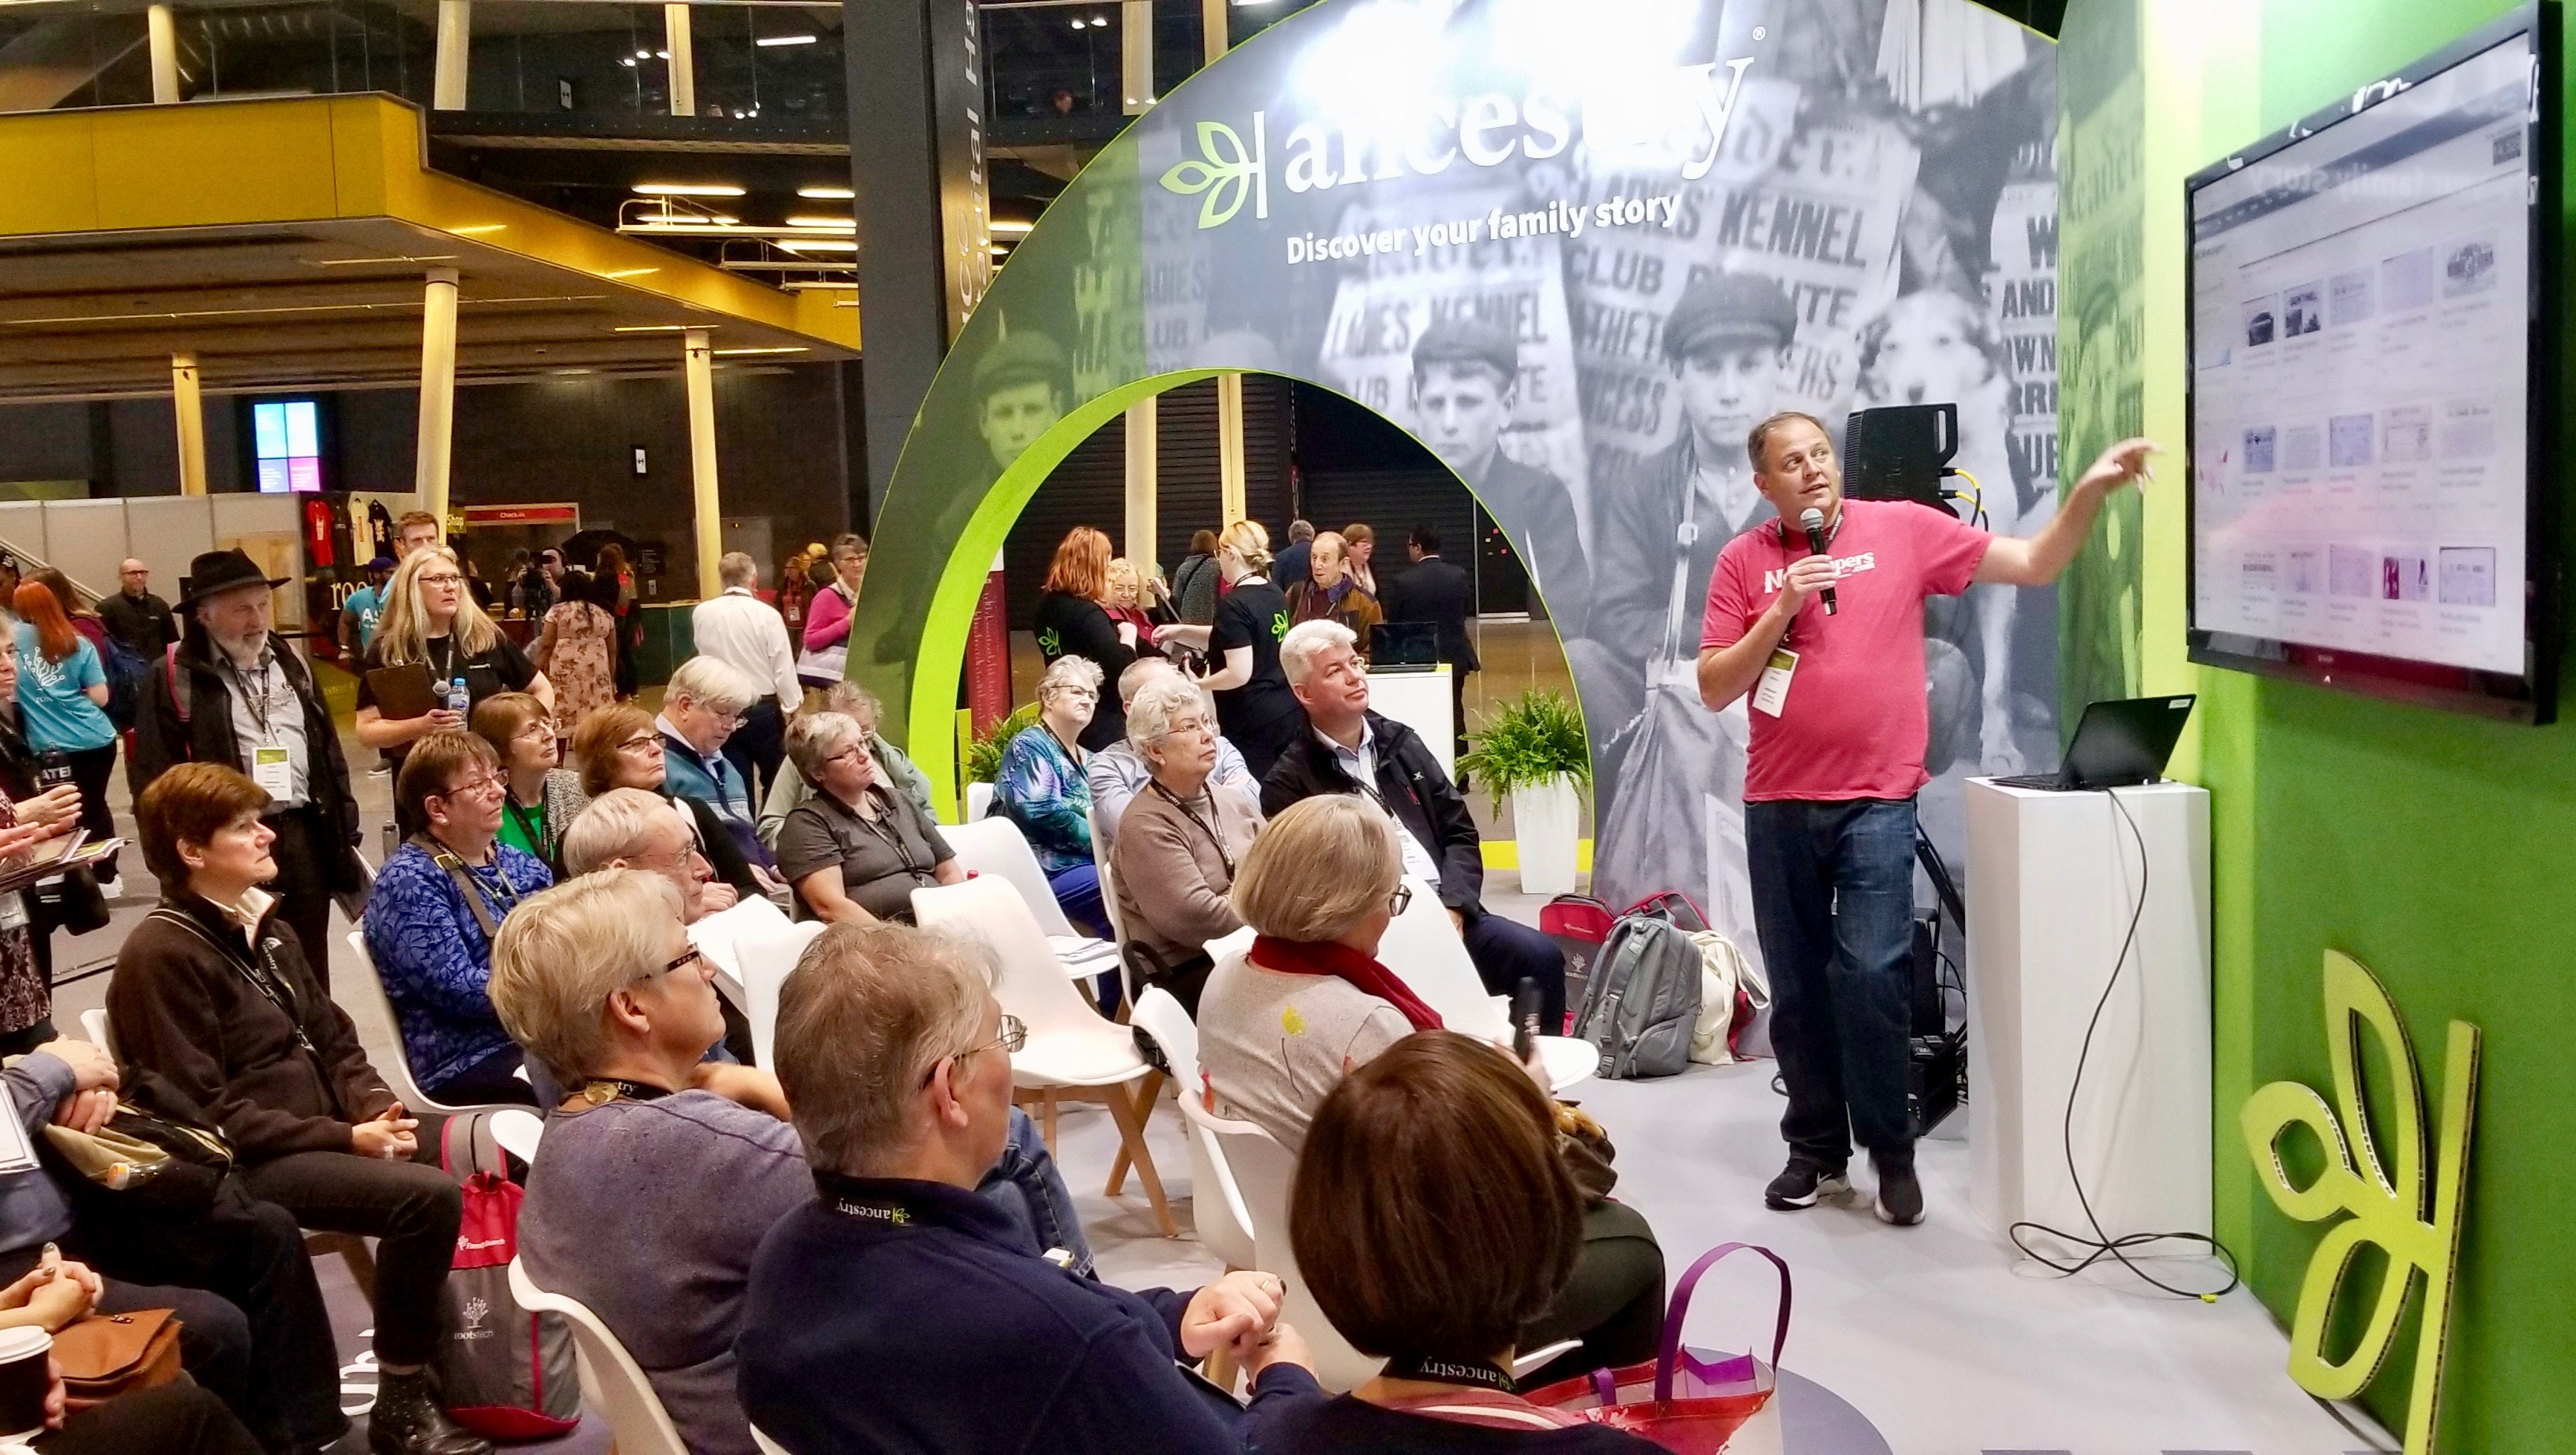 An Ancestry presenter leads a group presentation during RootsTech London on Thursday, Oct. 24, 2019, in the London Excel exhibition hall.